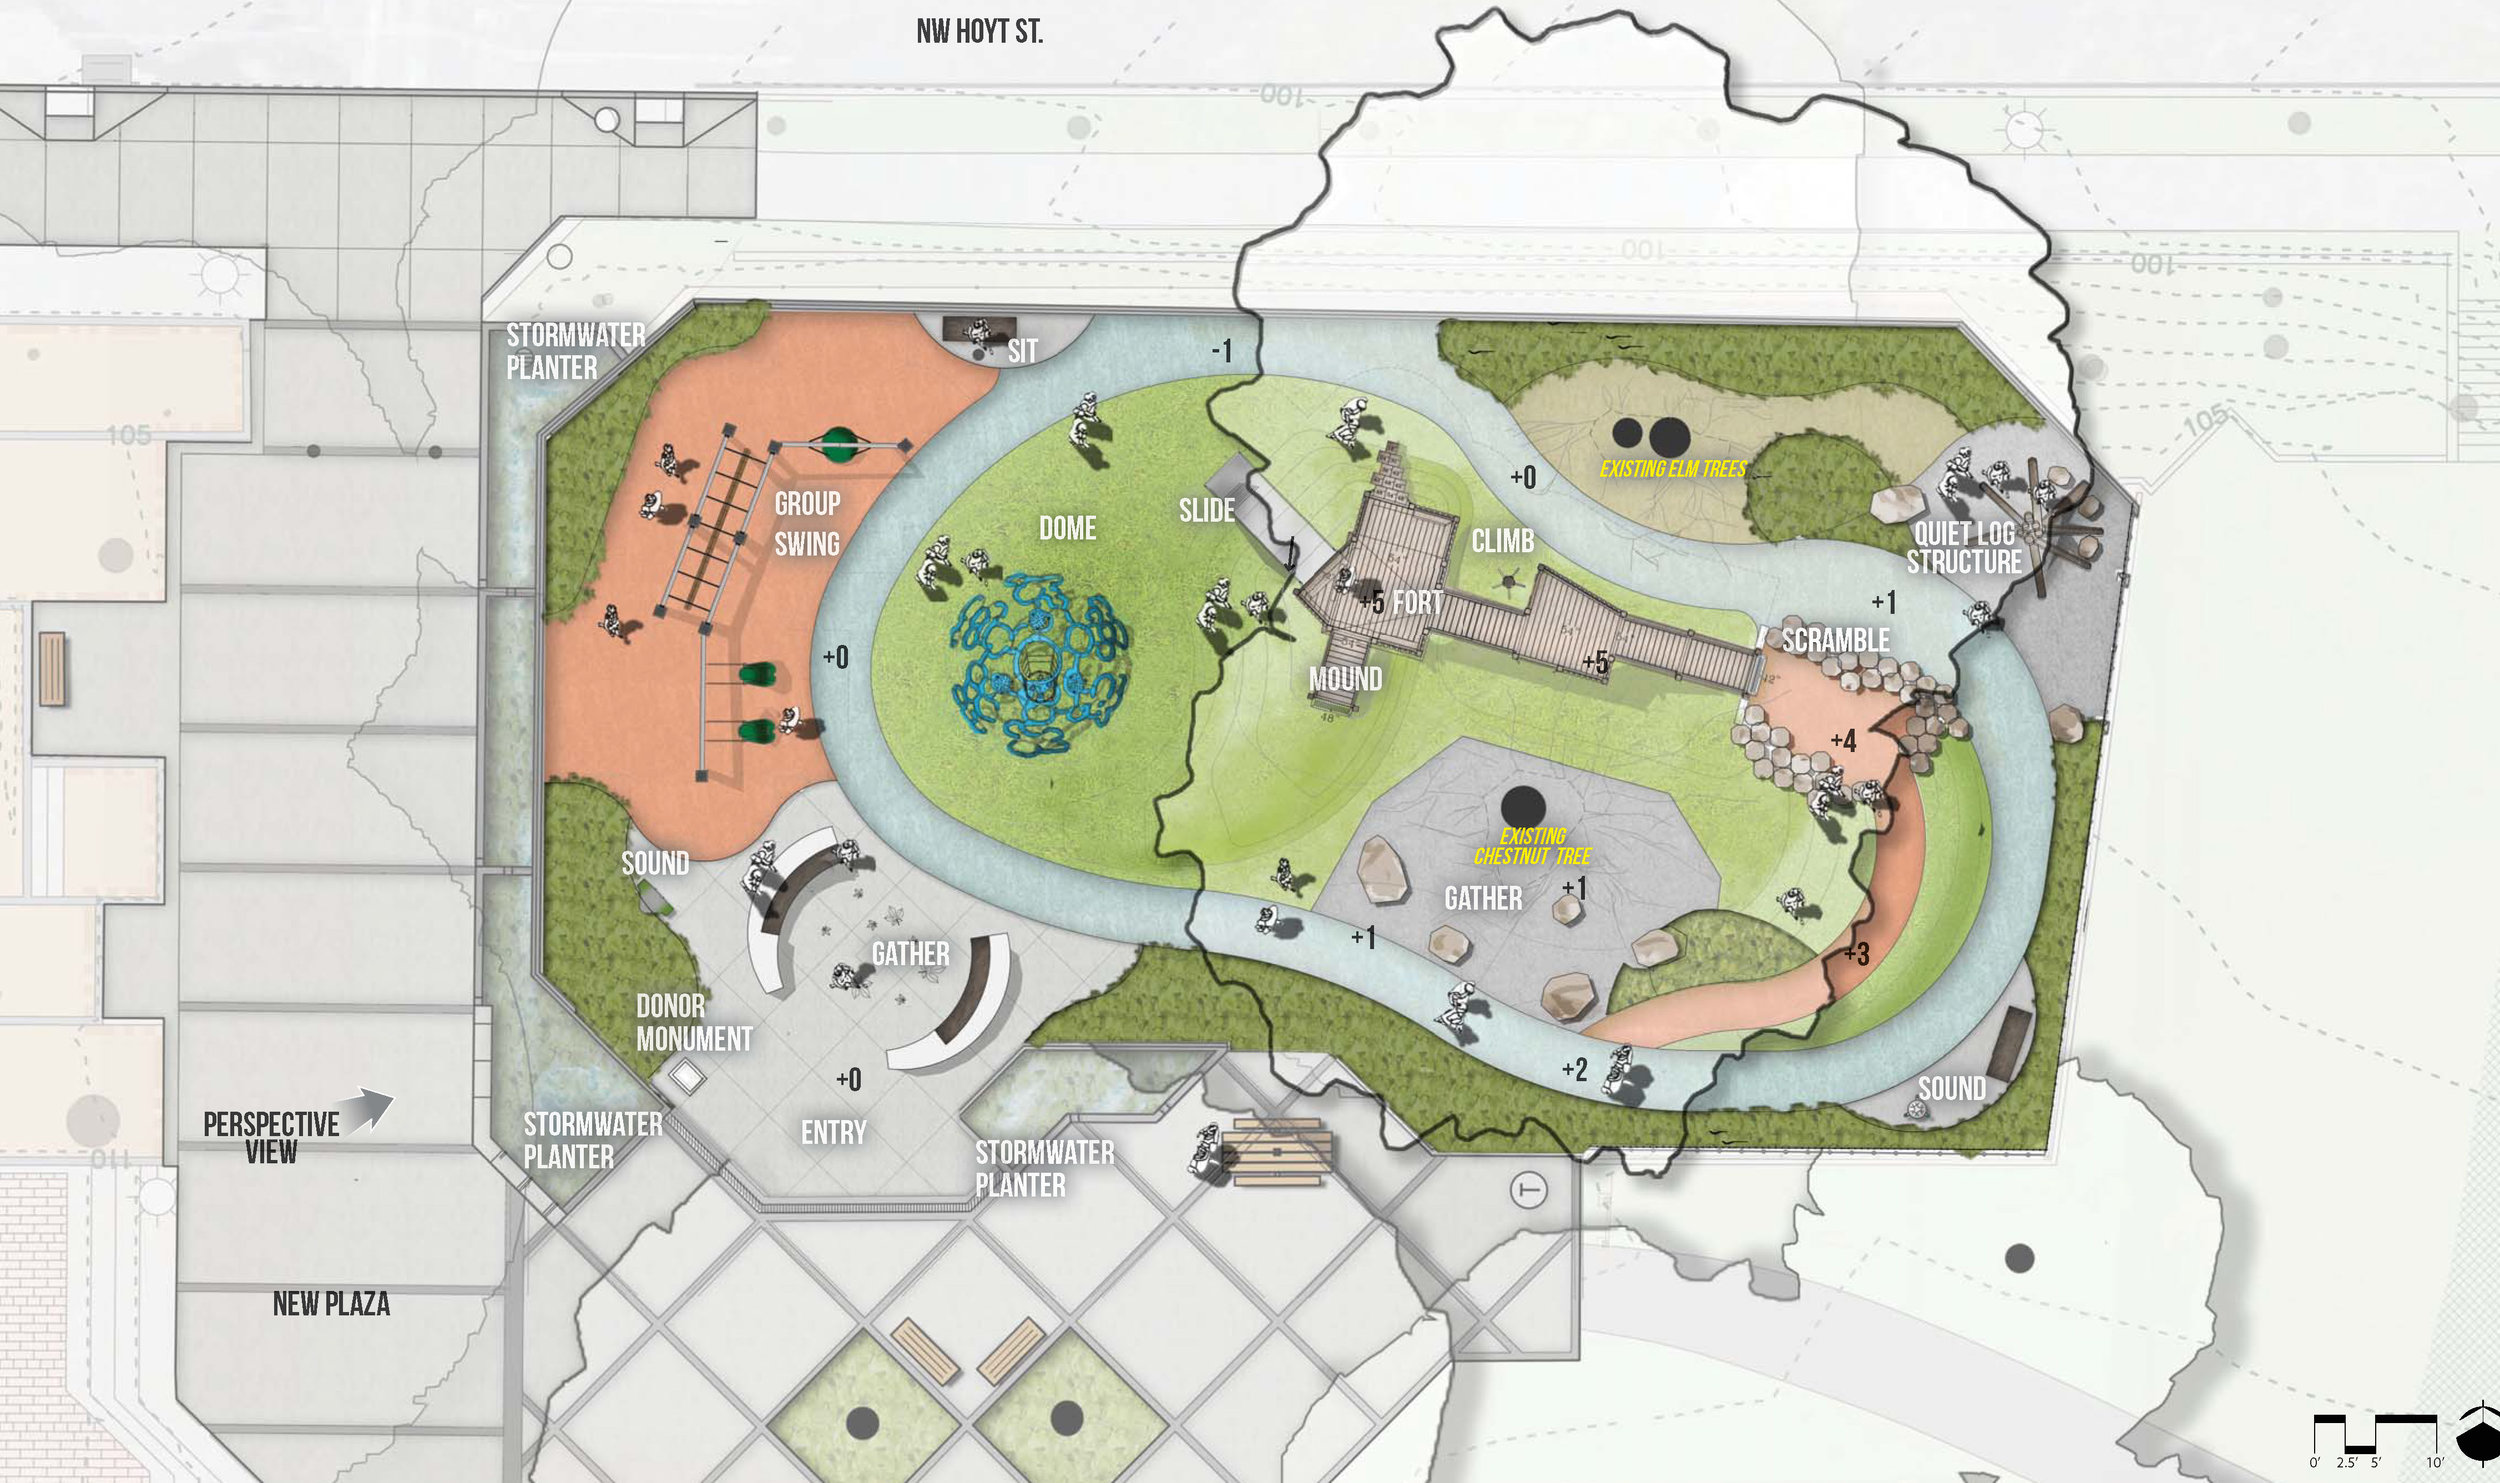 Couch Park Site Plan Birdseye View